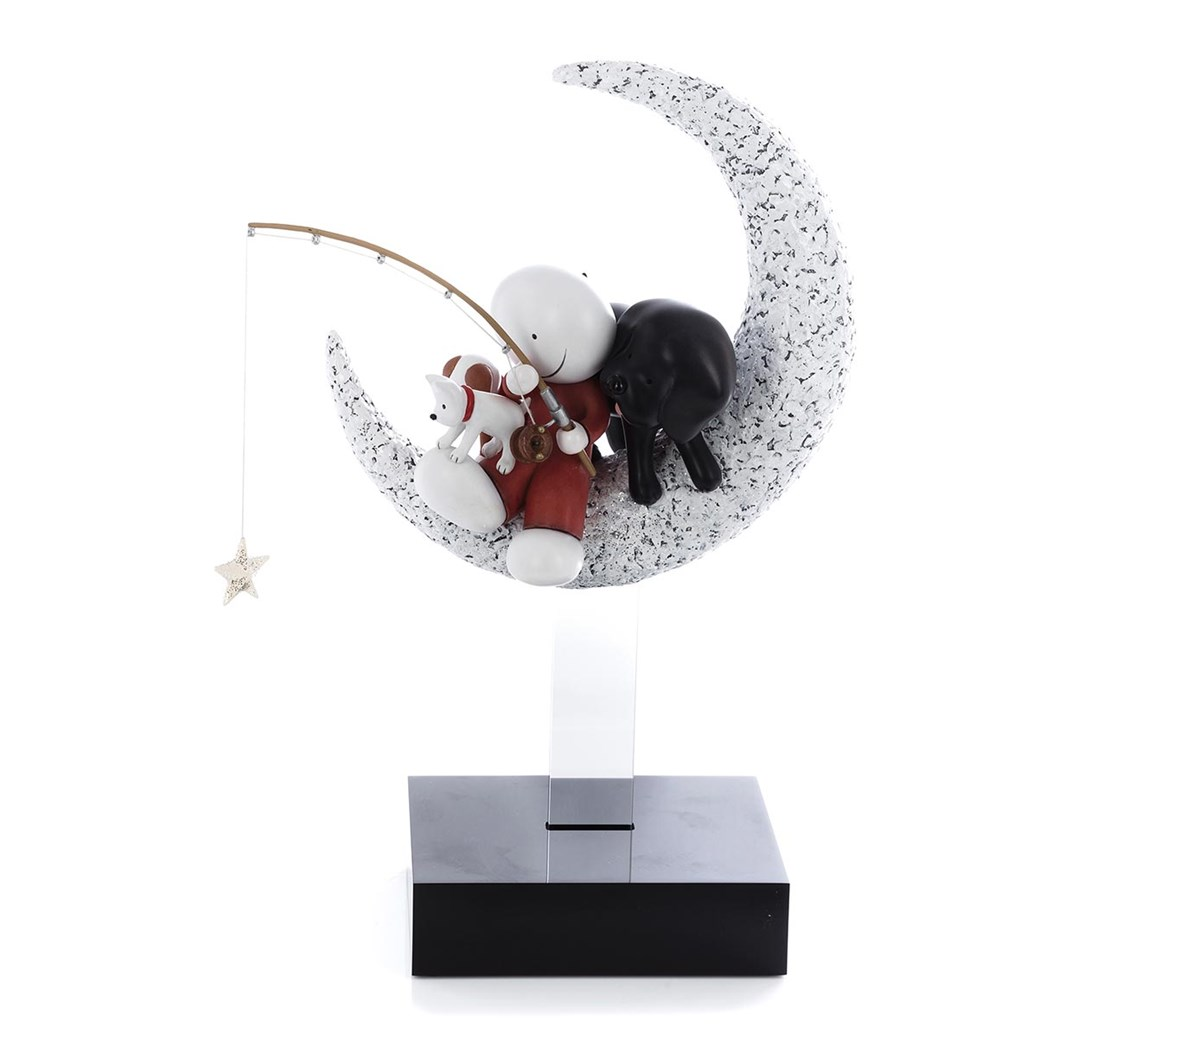 Catch a Falling Star by Doug Hyde - Cold Cast Porcelain sized 9x14 inches. Available from Whitewall Galleries